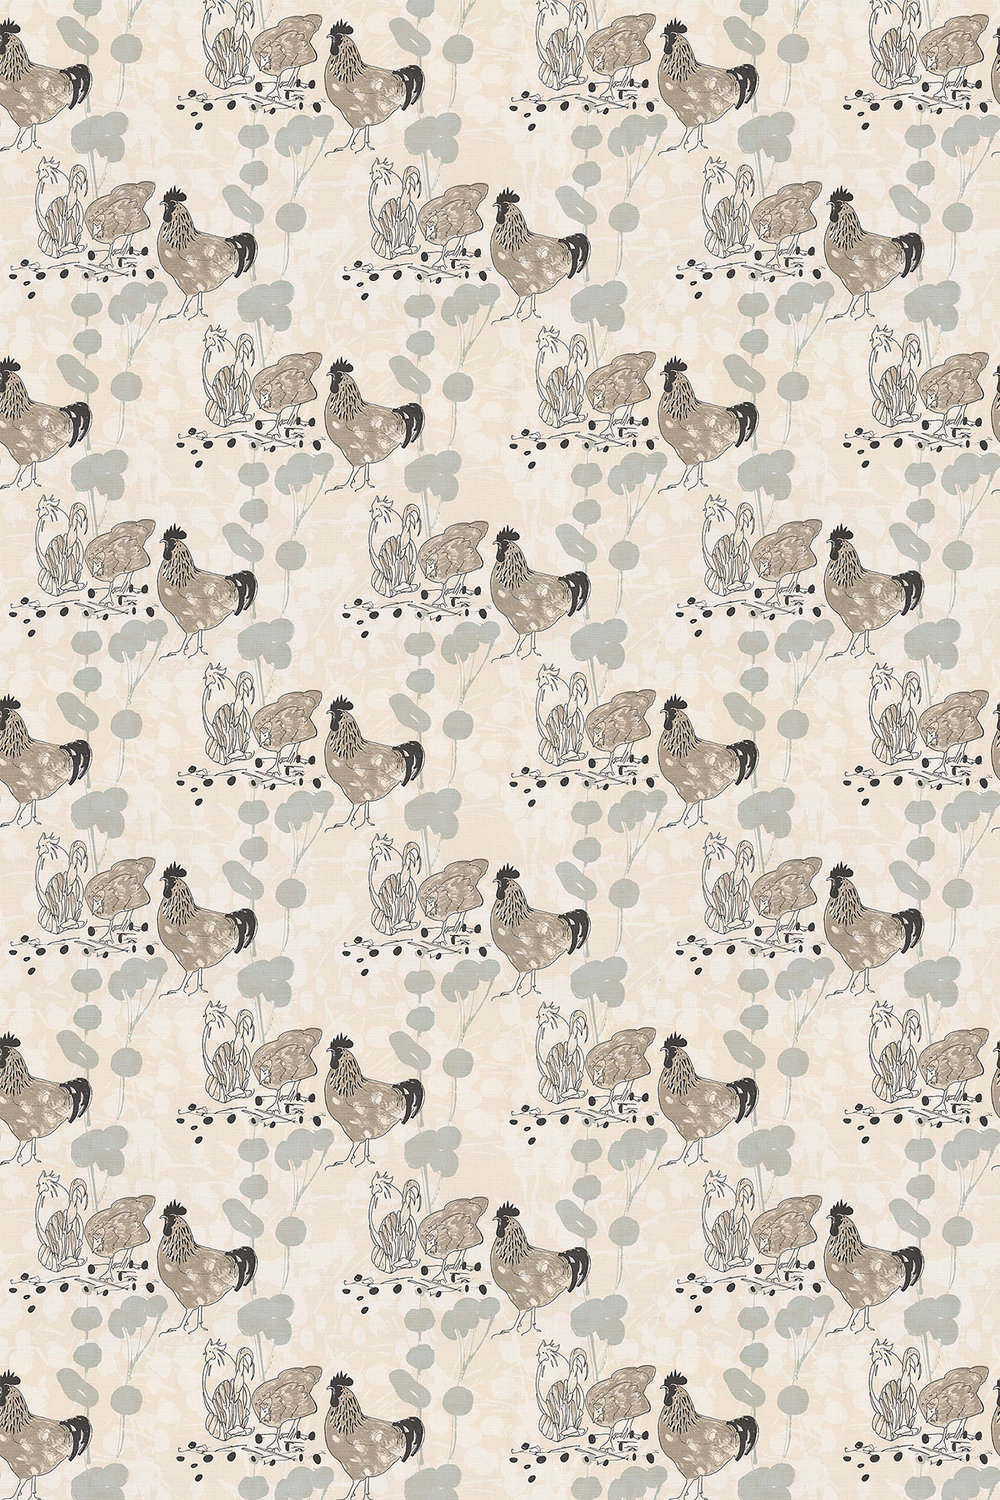 Belynda Sharples Linen Union Chicken 02 Neutral Fabric - Product code: BS-LU-CHI-02